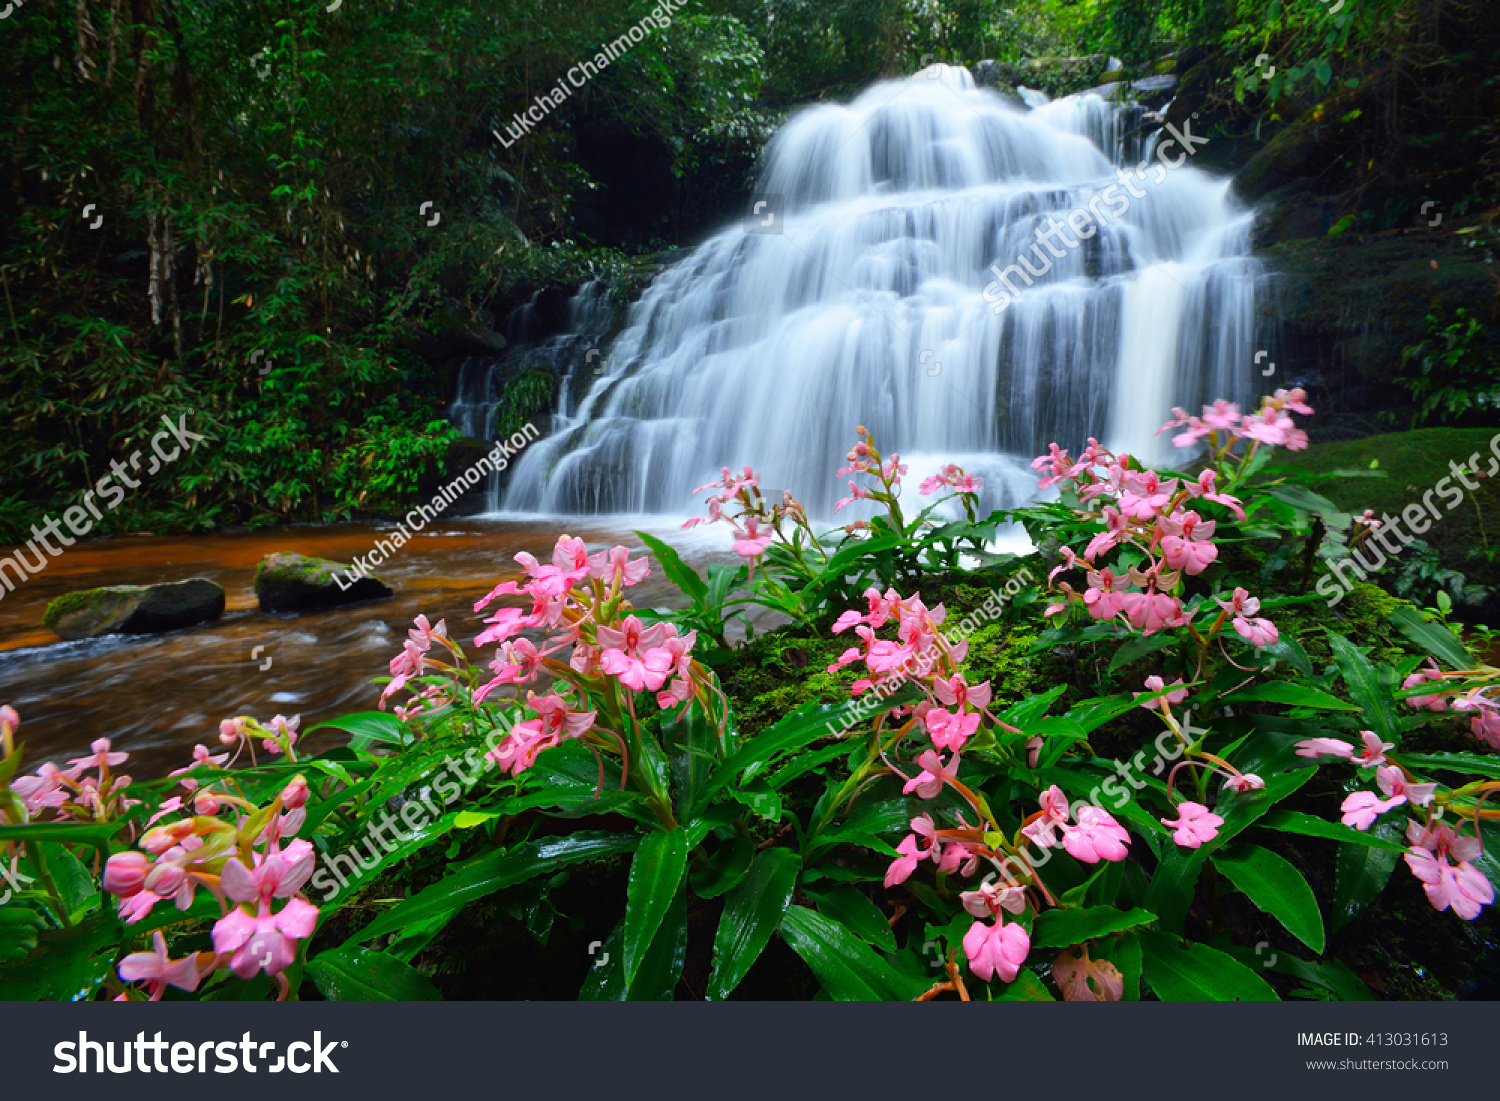 Mun Dang waterfall and dragonflowers it's waterfall in the rainforest in Thailand